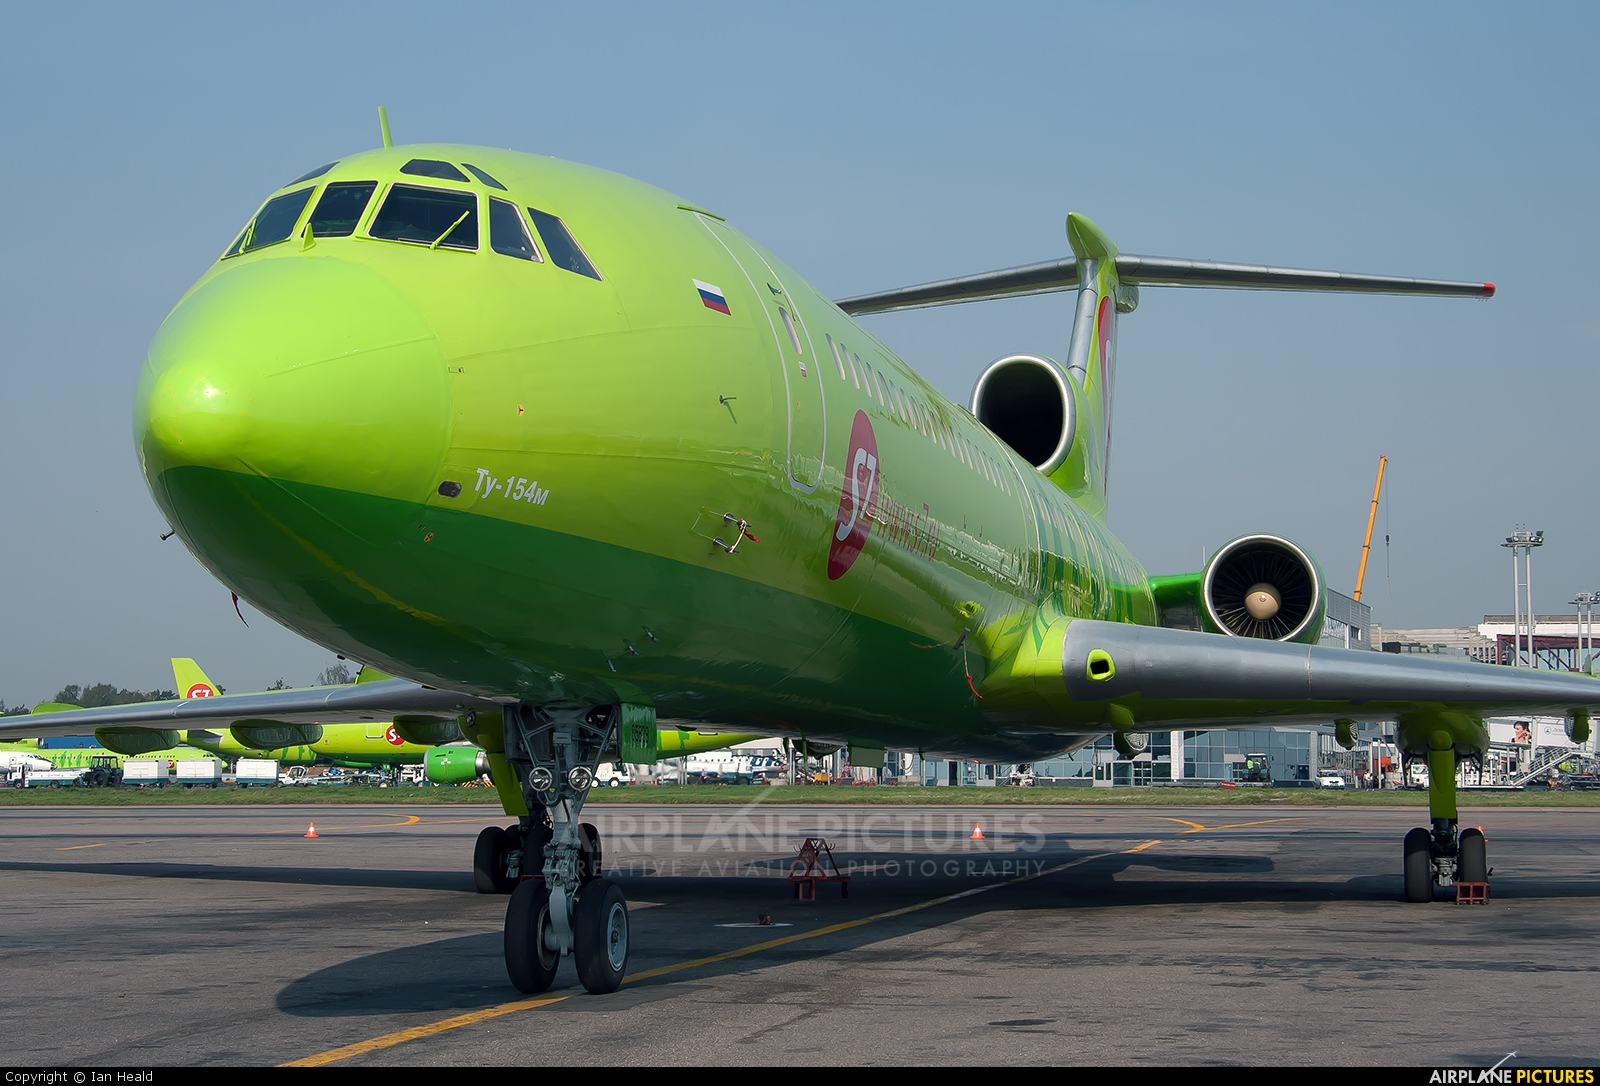 S7 Airlines RA-85829 aircraft at Moscow - Domodedovo